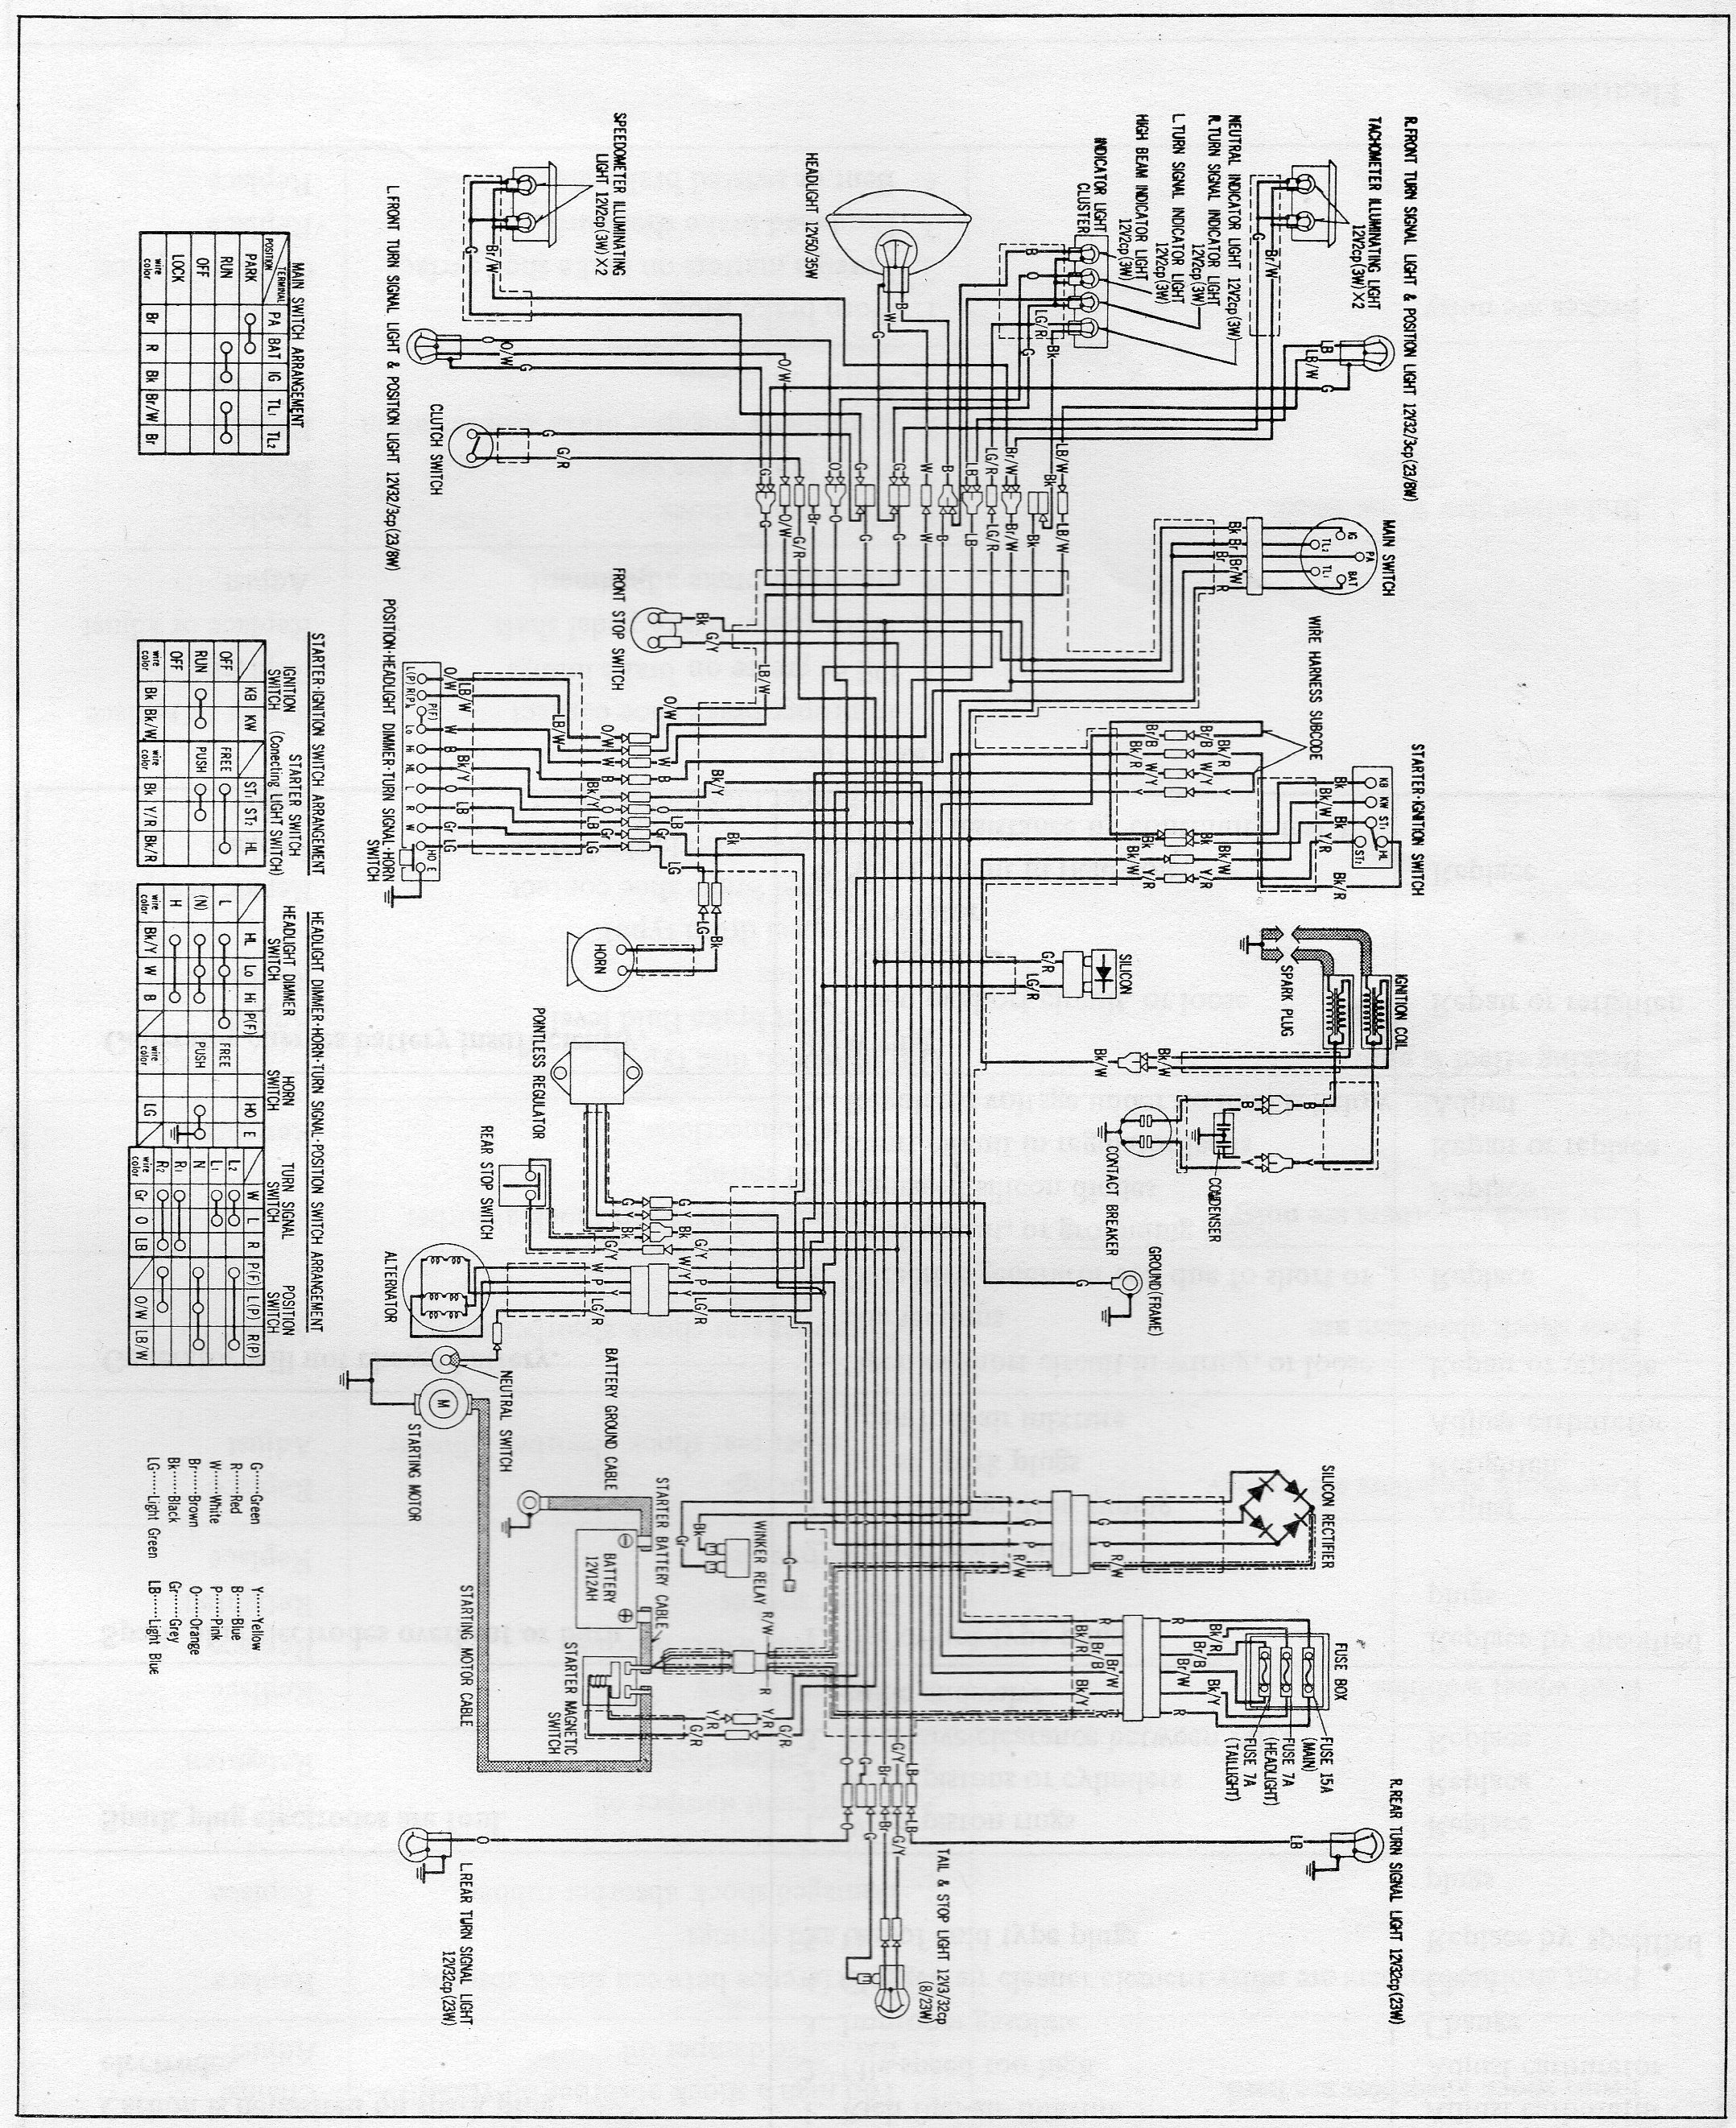 125825d1481670031 wiring diagrams img_6961 hyosung gt250r wiring diagrams wiring diagrams hyosung gt250r brake wiring diagram at crackthecode.co